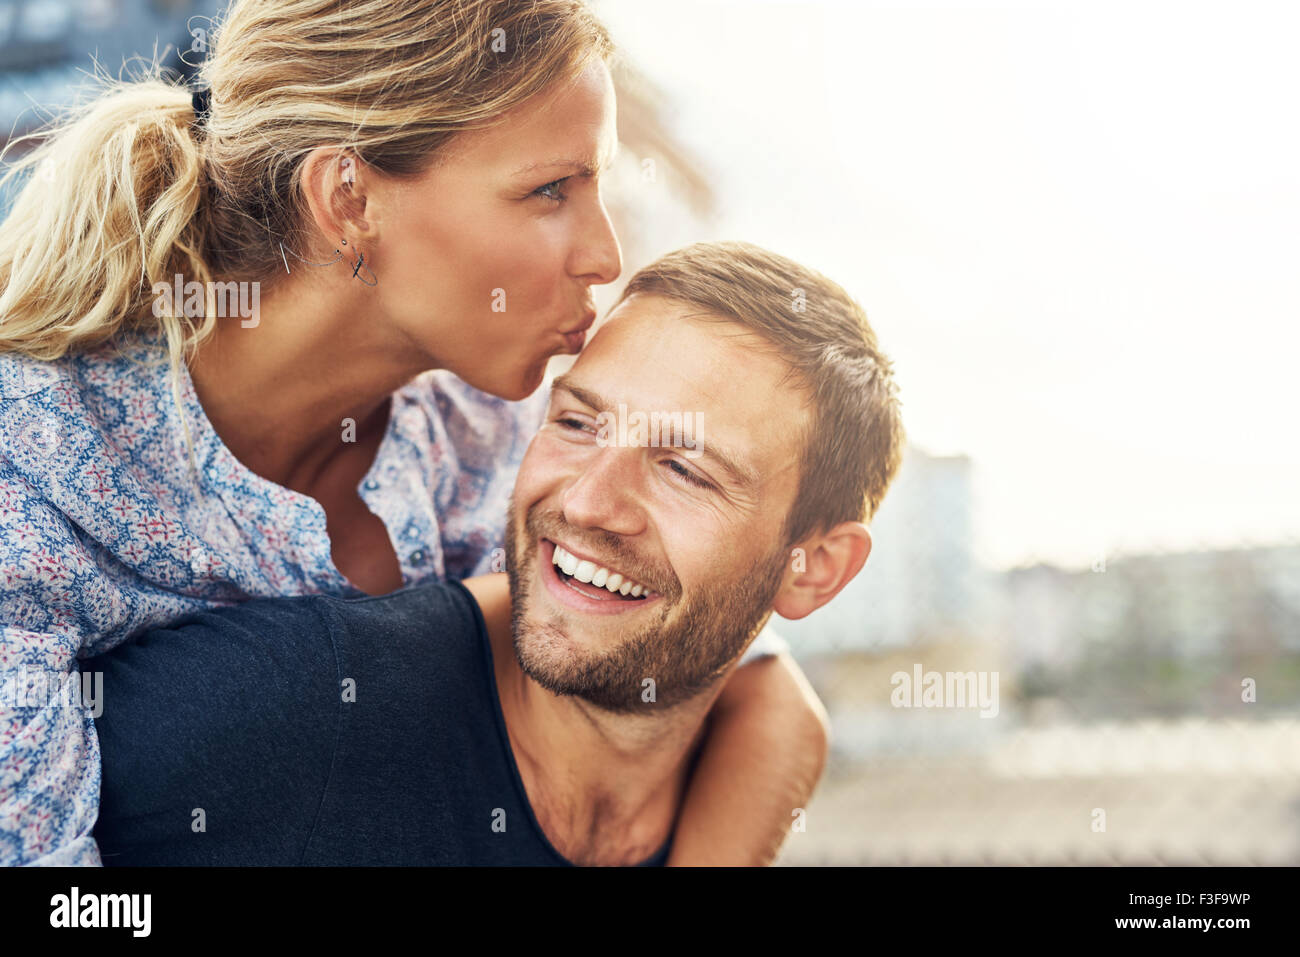 Woman Kissing Man While He Laughs, Young Couple - Stock Image